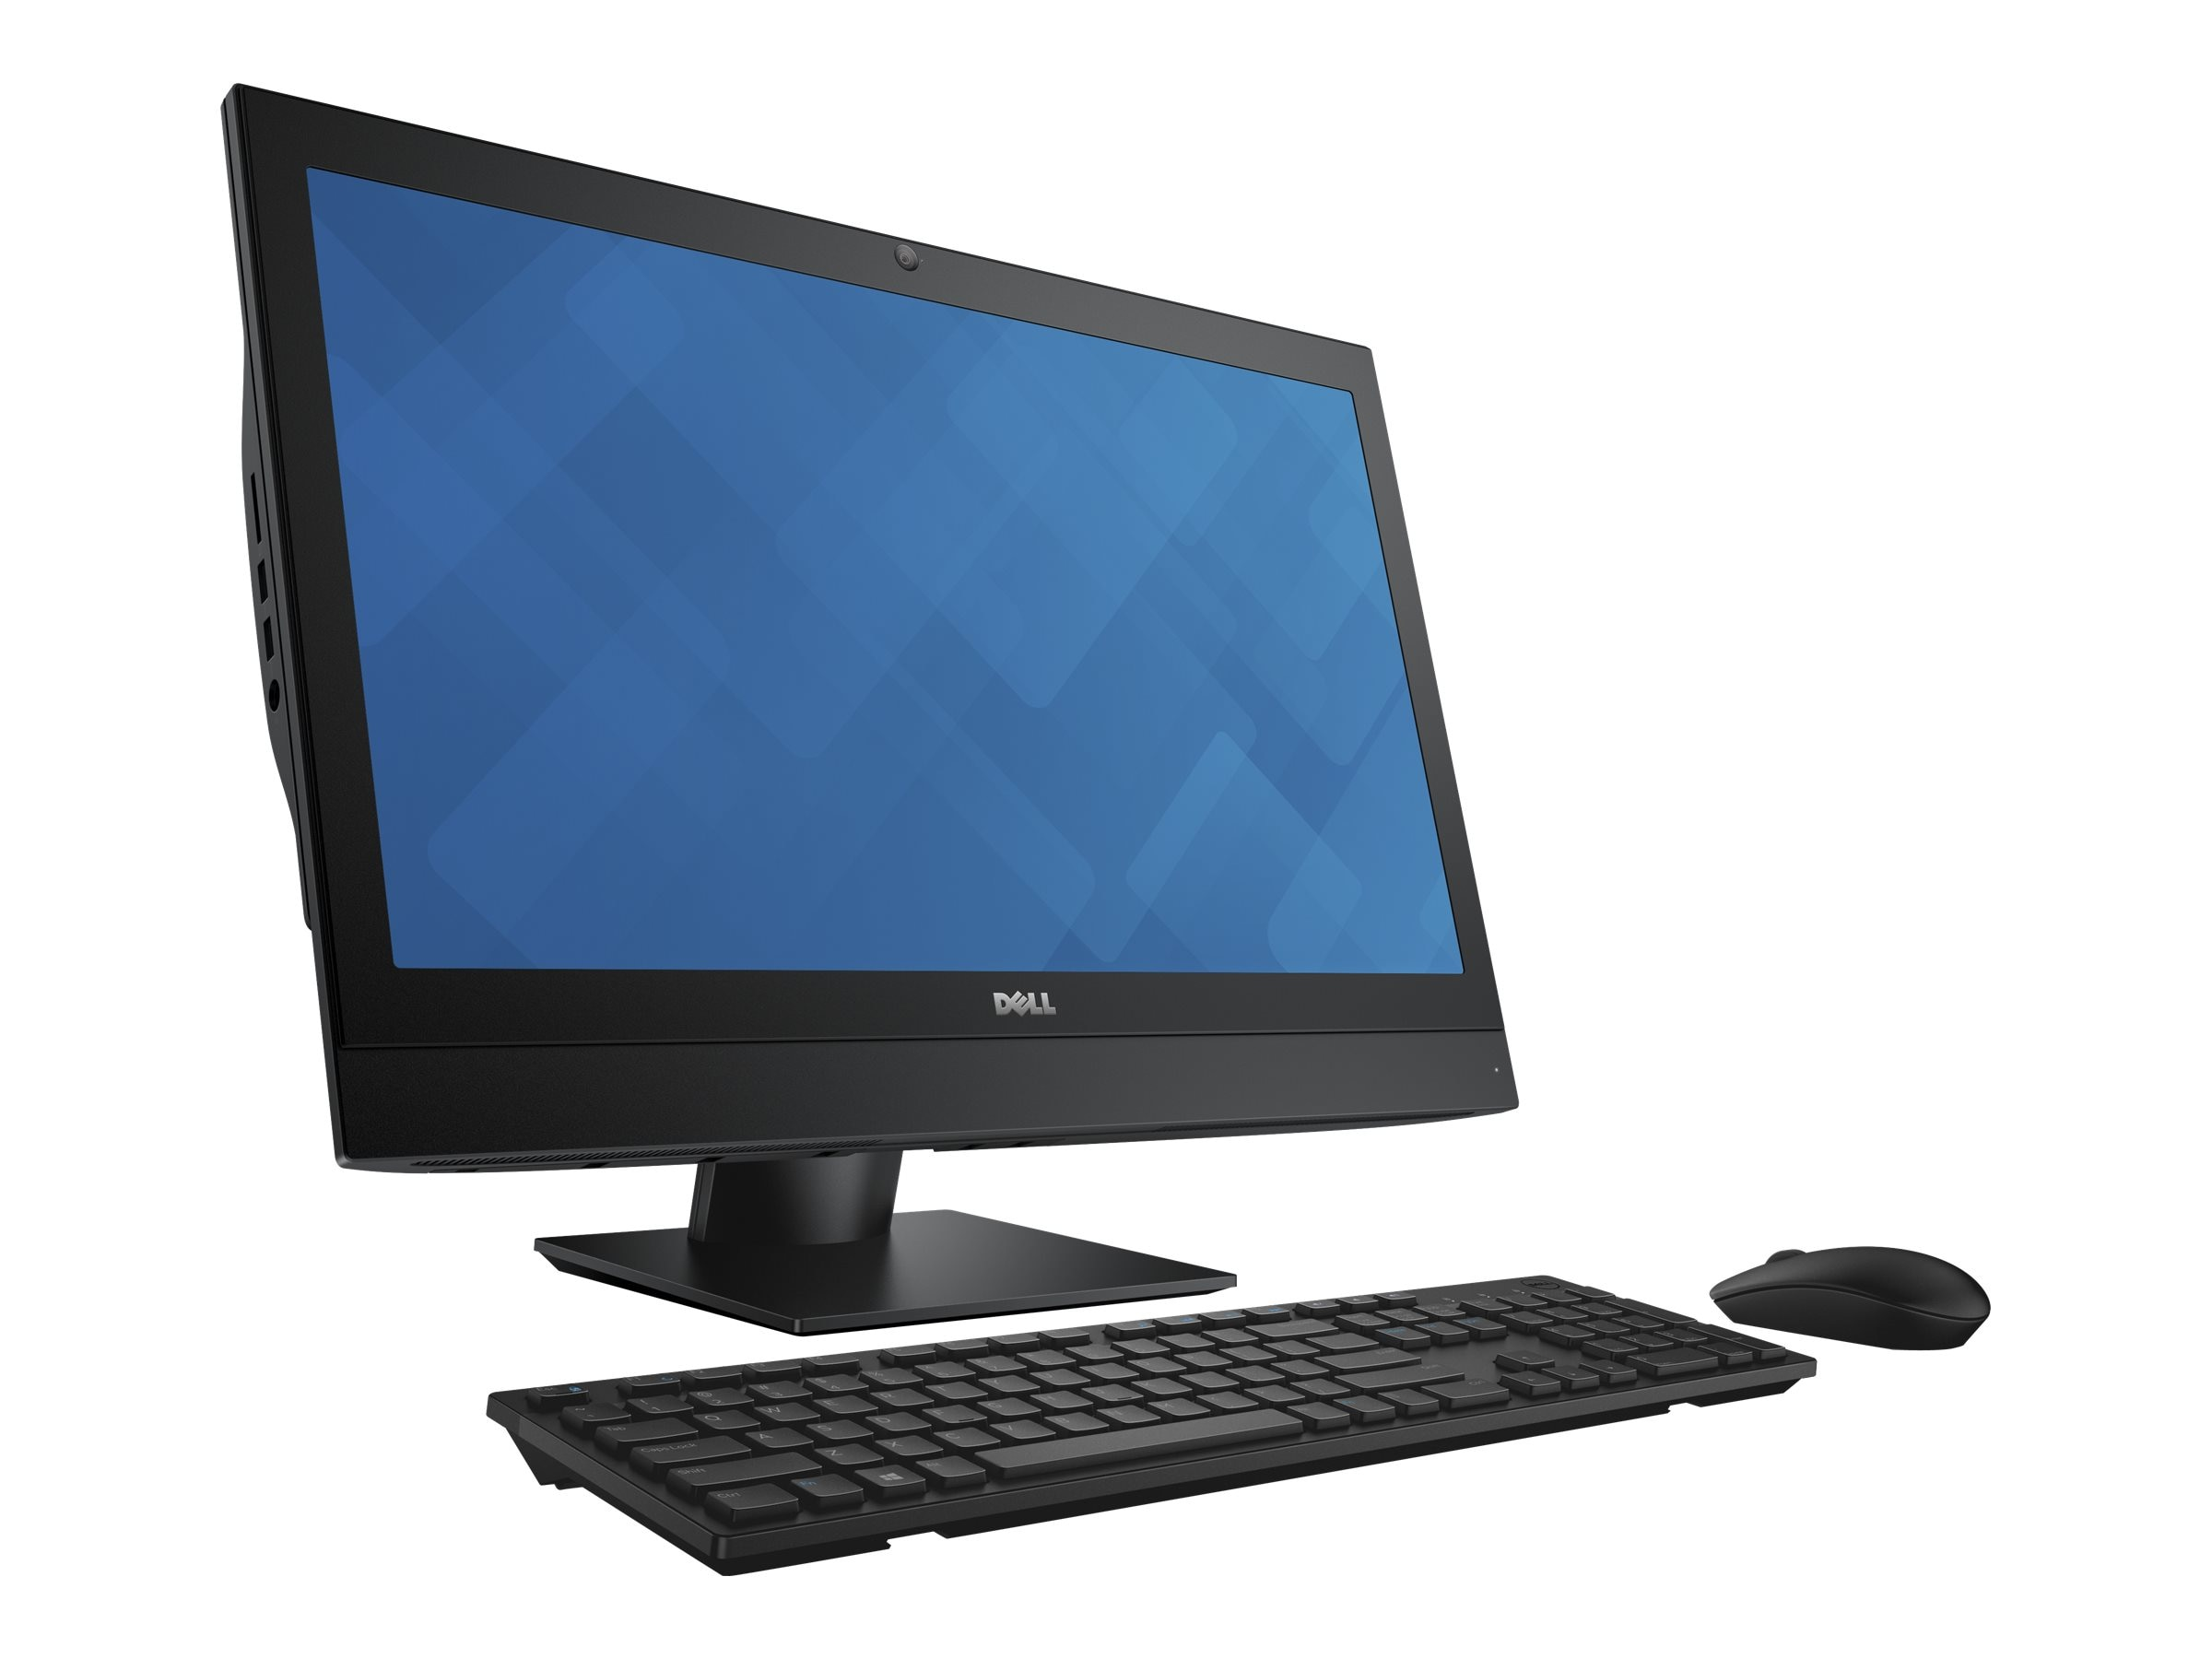 Dell OptiPlex 7440 AIO Core i5-6500 3.2GHz 8GB 500GB DVD+RW ac BT WC 23 FHD W7P64-W10P, GDHFD